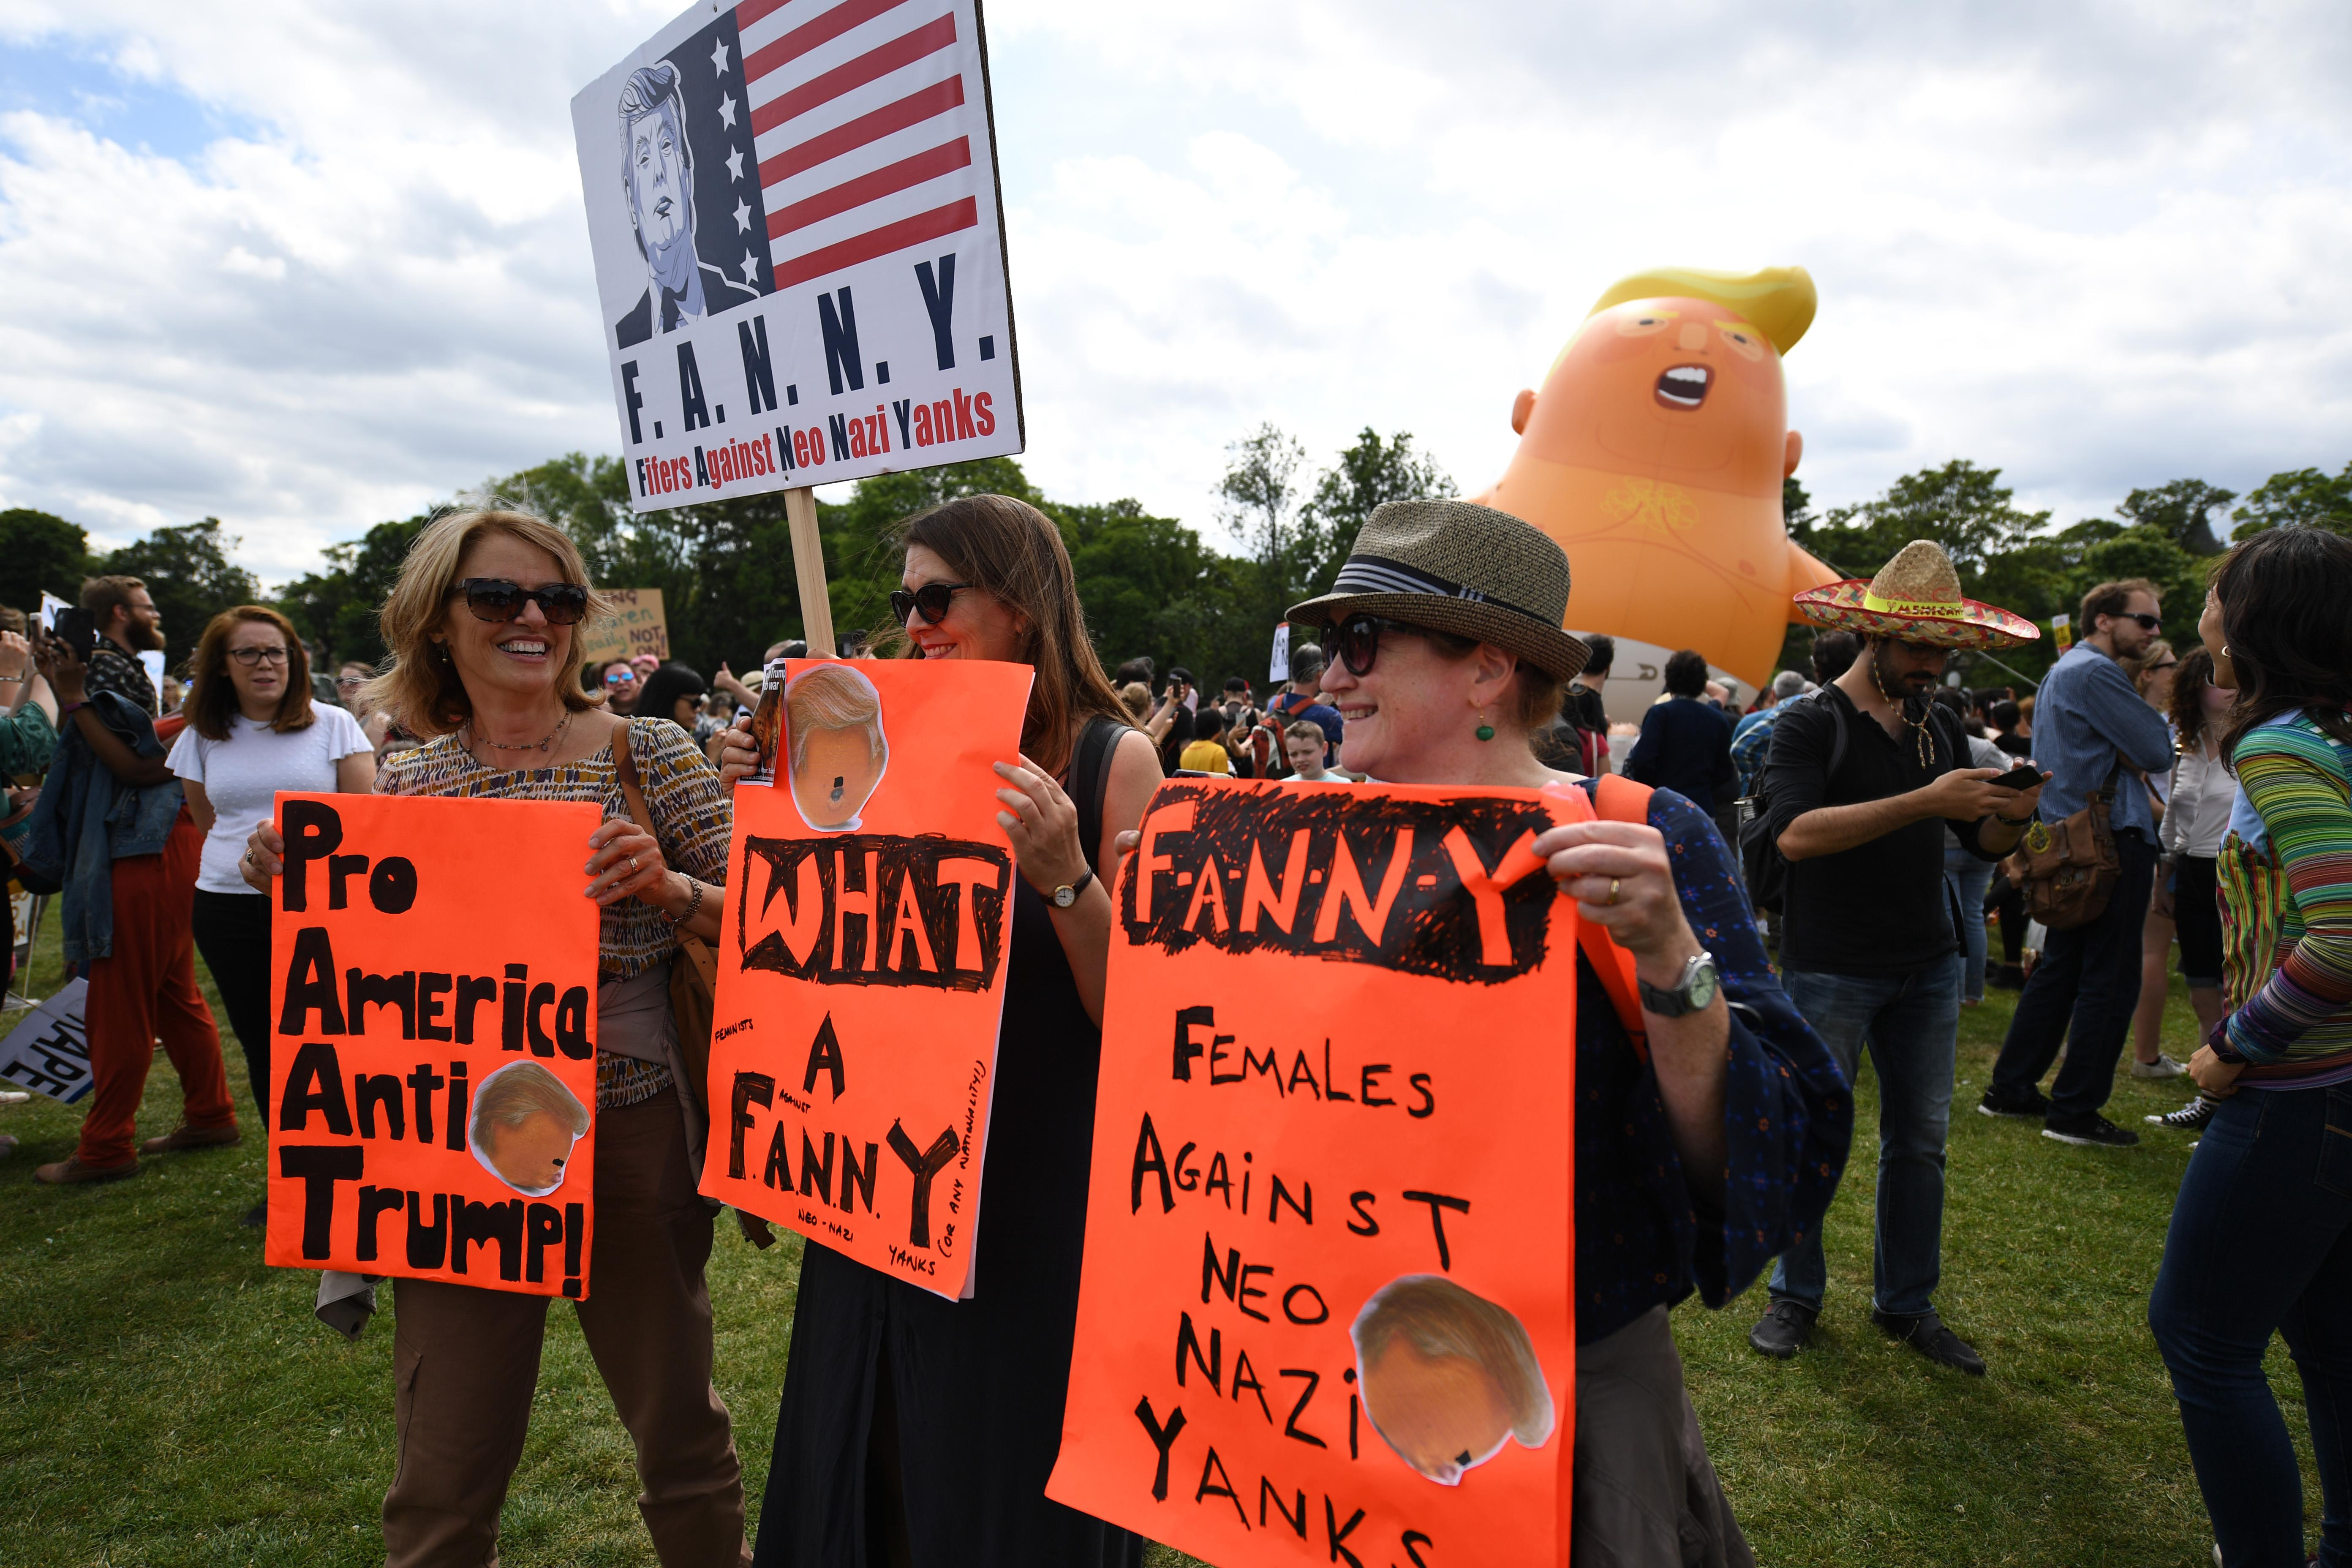 The Baby Trump Balloon floats in the middle of crowds holding anti-Trump signs while the U.S. President is visiting Trump Turnberry Luxury Collection Resort in Scotland as people gather to protest during his visit to the United Kingdom on July 14, 2018 in Edinburgh, Scotland.